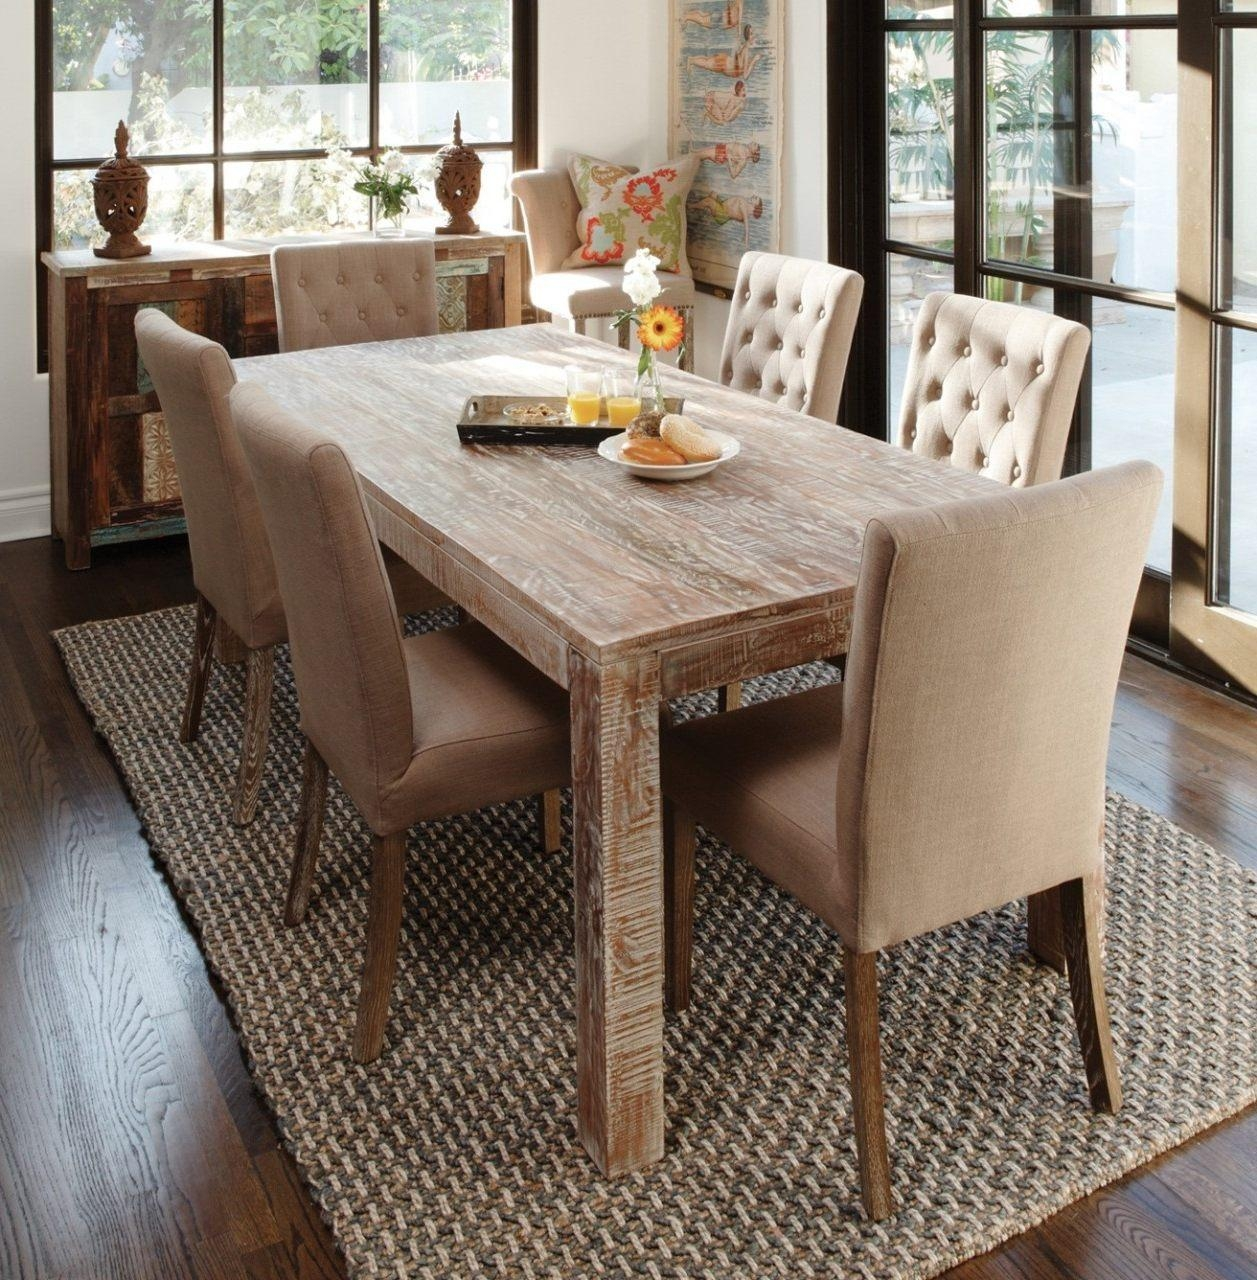 Chair Winsome Modern Rustic Kitchen Table Sofa With Set Gorgeous Inside Sofa Table With Chairs (Image 10 of 20)